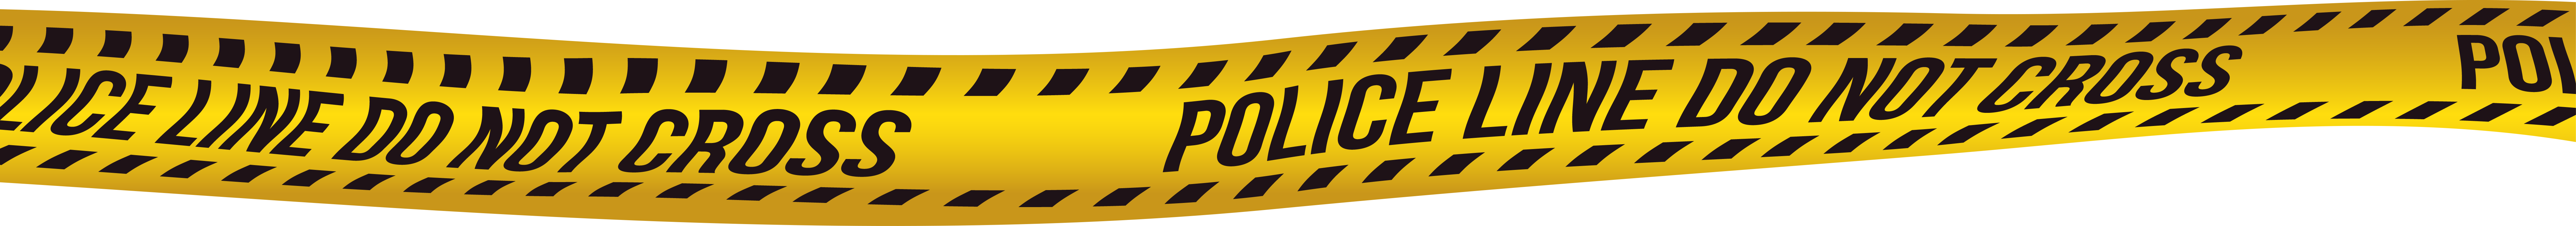 Do Not Cross Police Line PNG Clip Art Image.